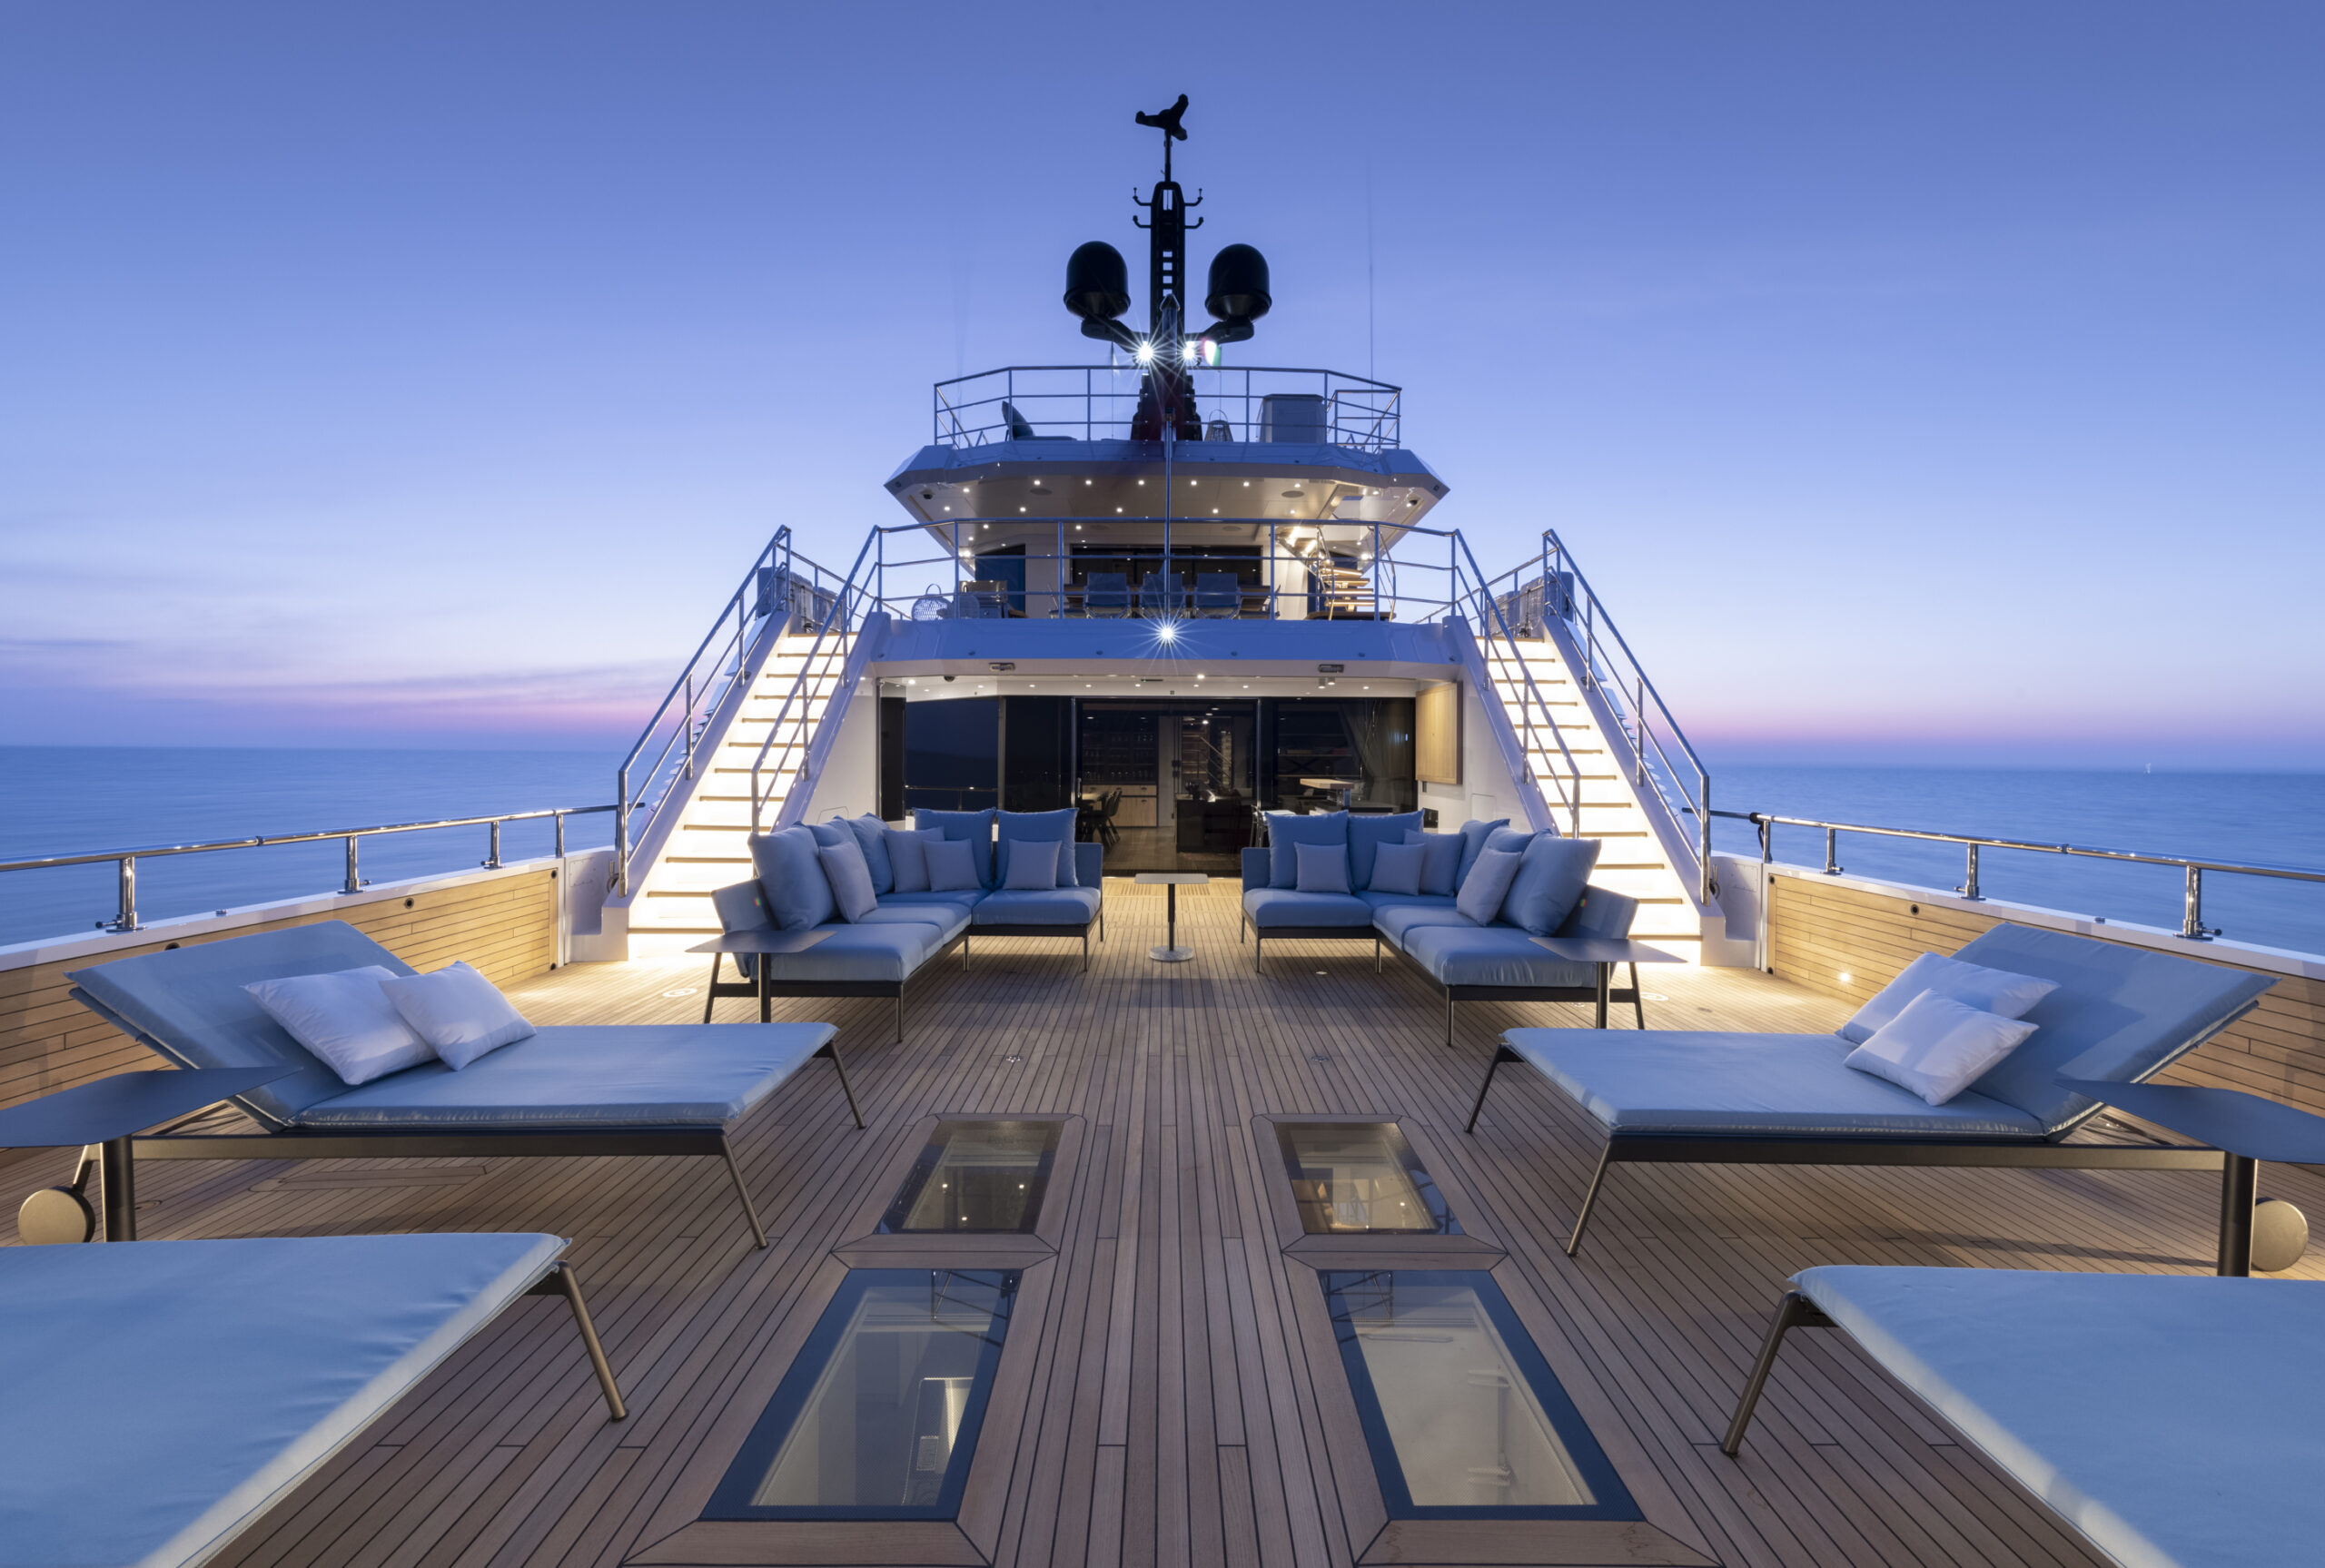 lounge deck of the Cantgiere Delle MarcheFlexplorer 130 pictured during sunset